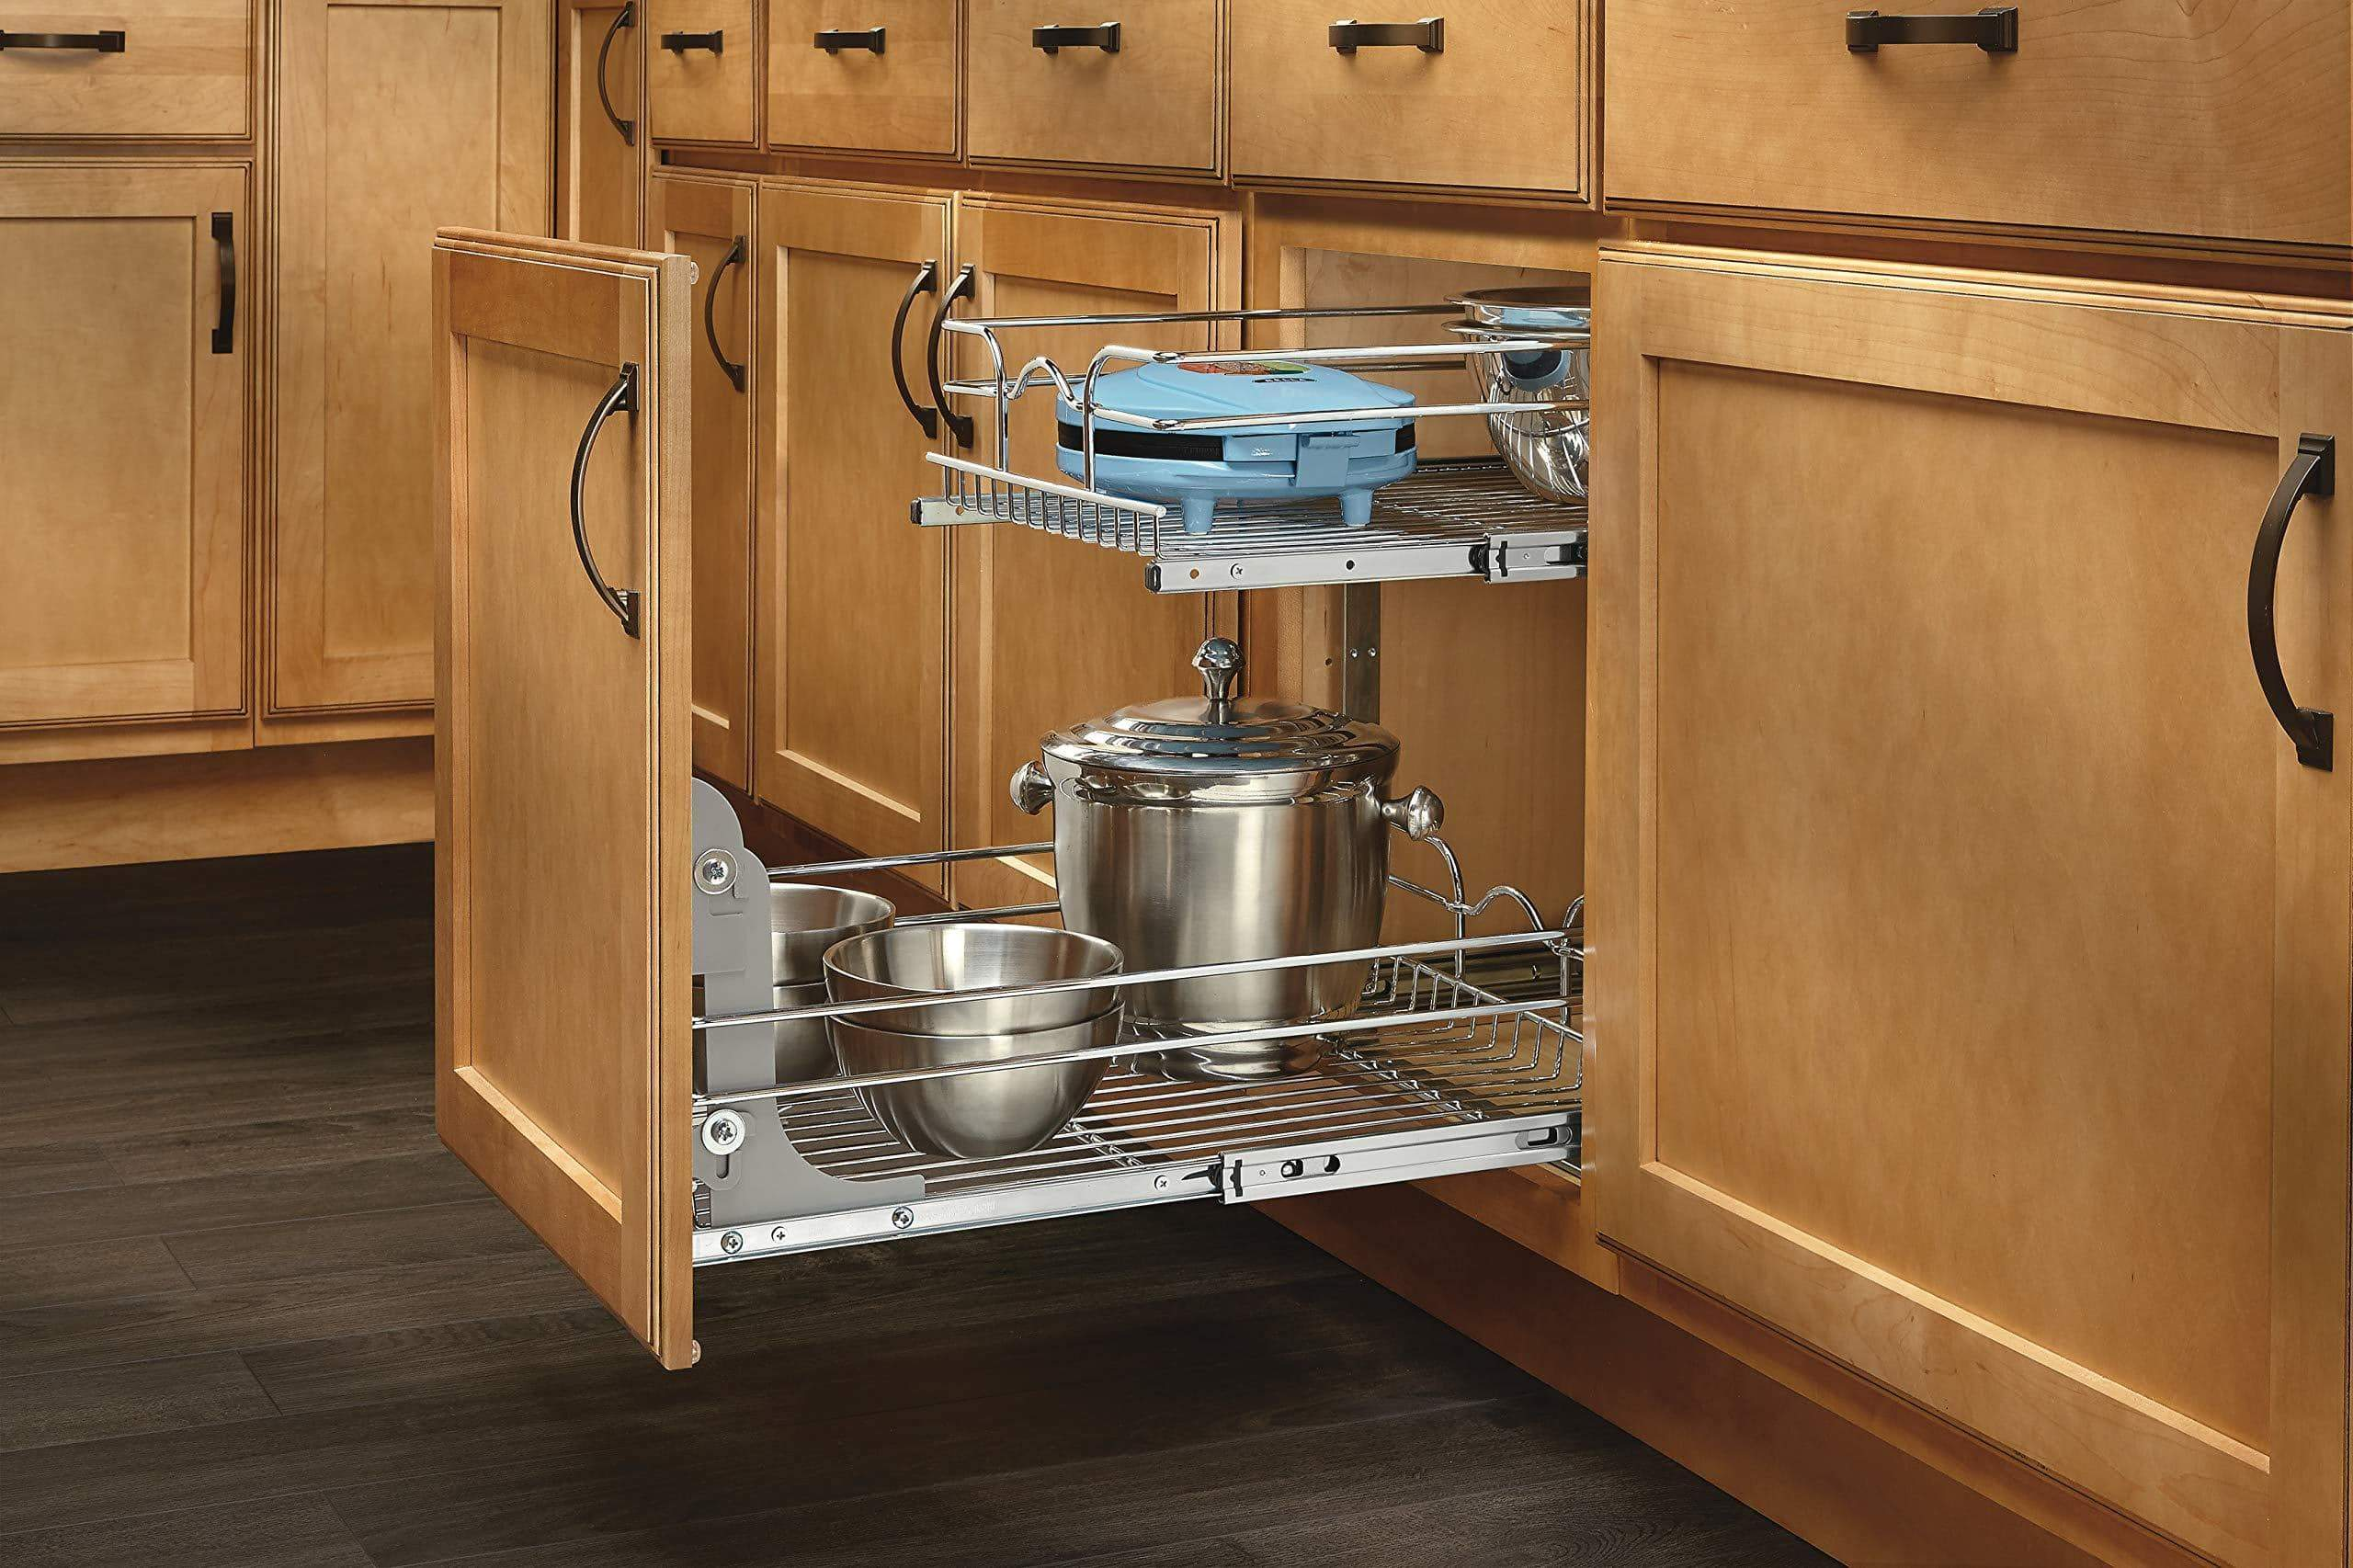 Explore rev a shelf 5wb2 0918 cr base cabinet pullout 2 tier wire basket reduced depth sink base accessories 9 w x 18 d inches